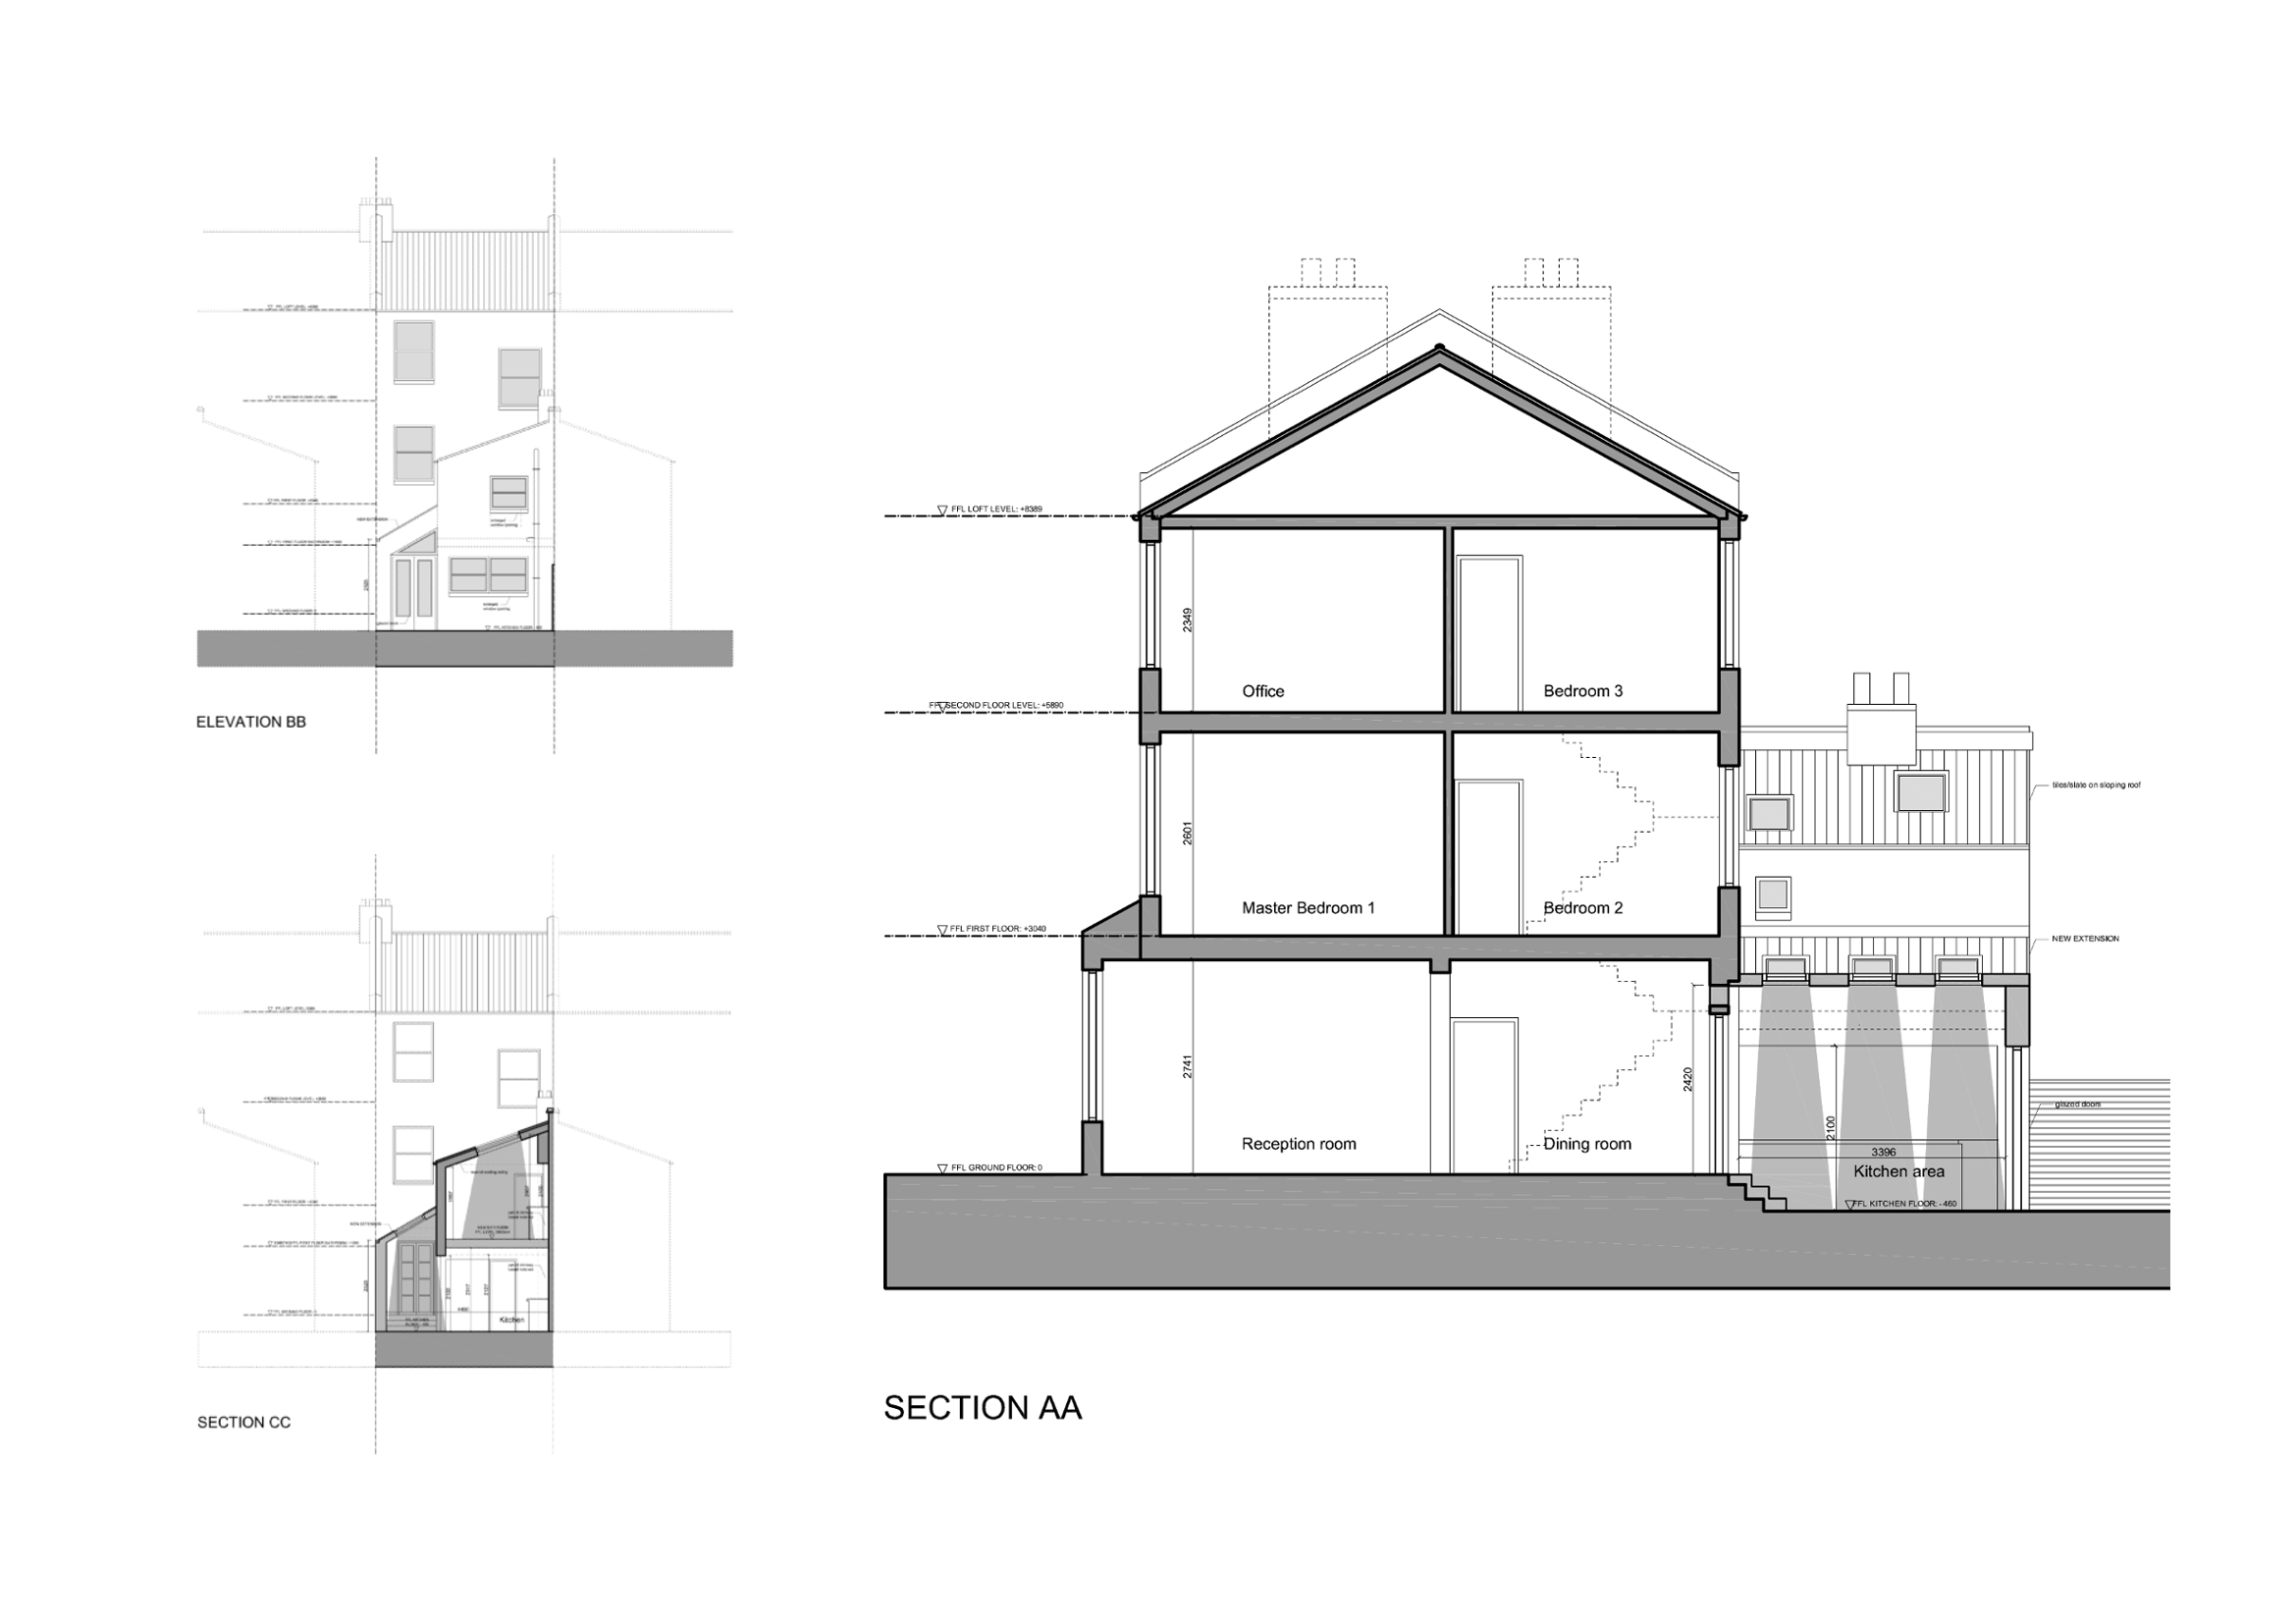 Architect designed kitchen extension clapham north lambeth sw4 for Floor plans elevations and sections